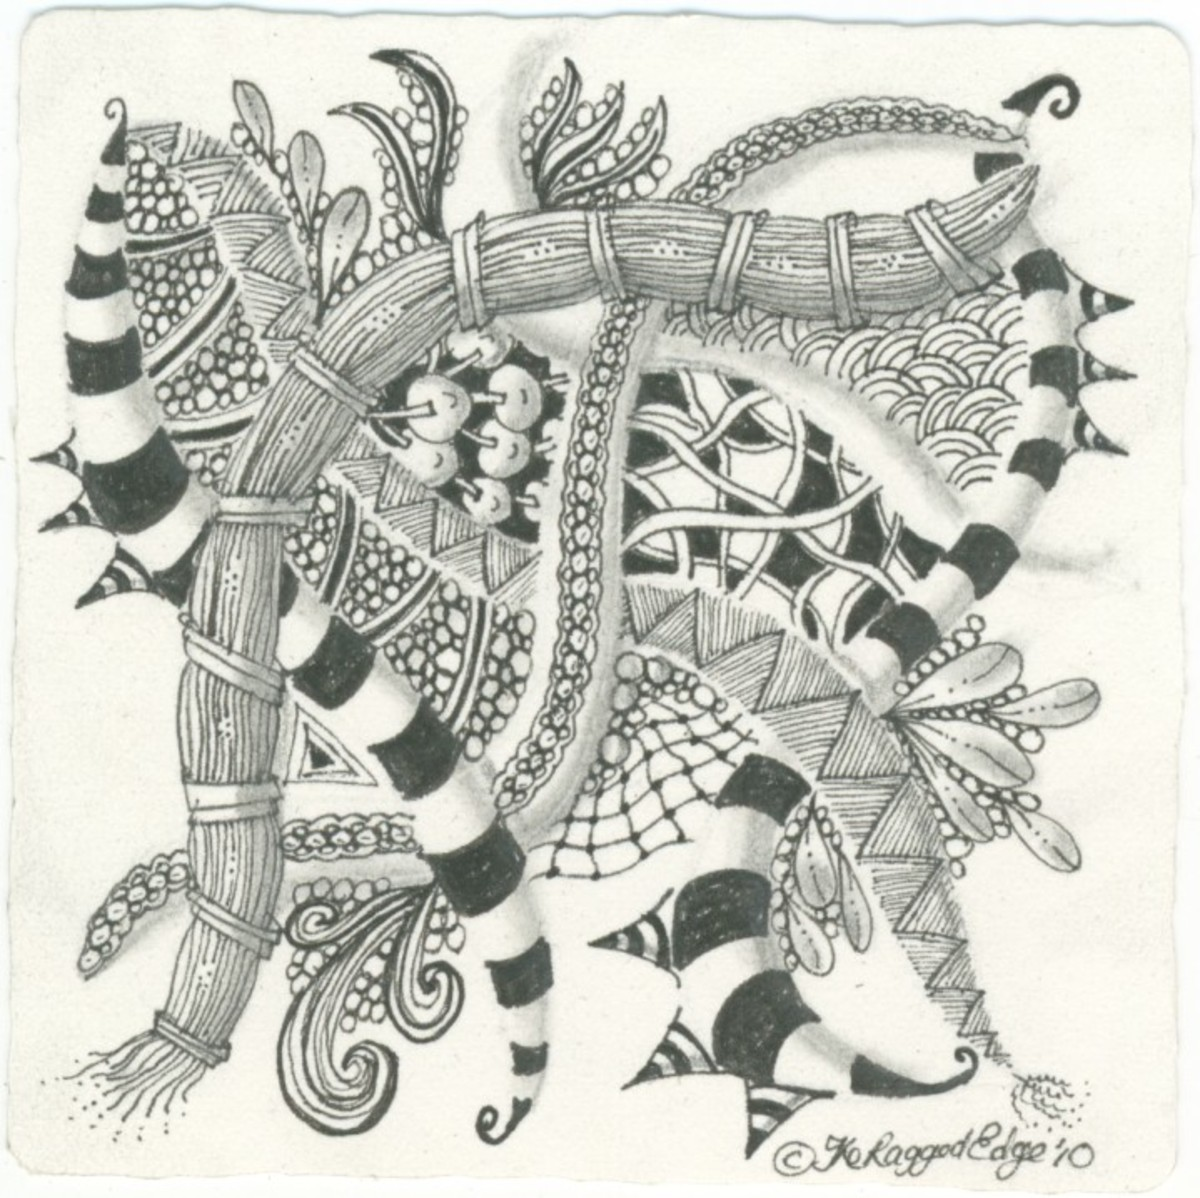 How to Draw a Zentangle or Zendoodle